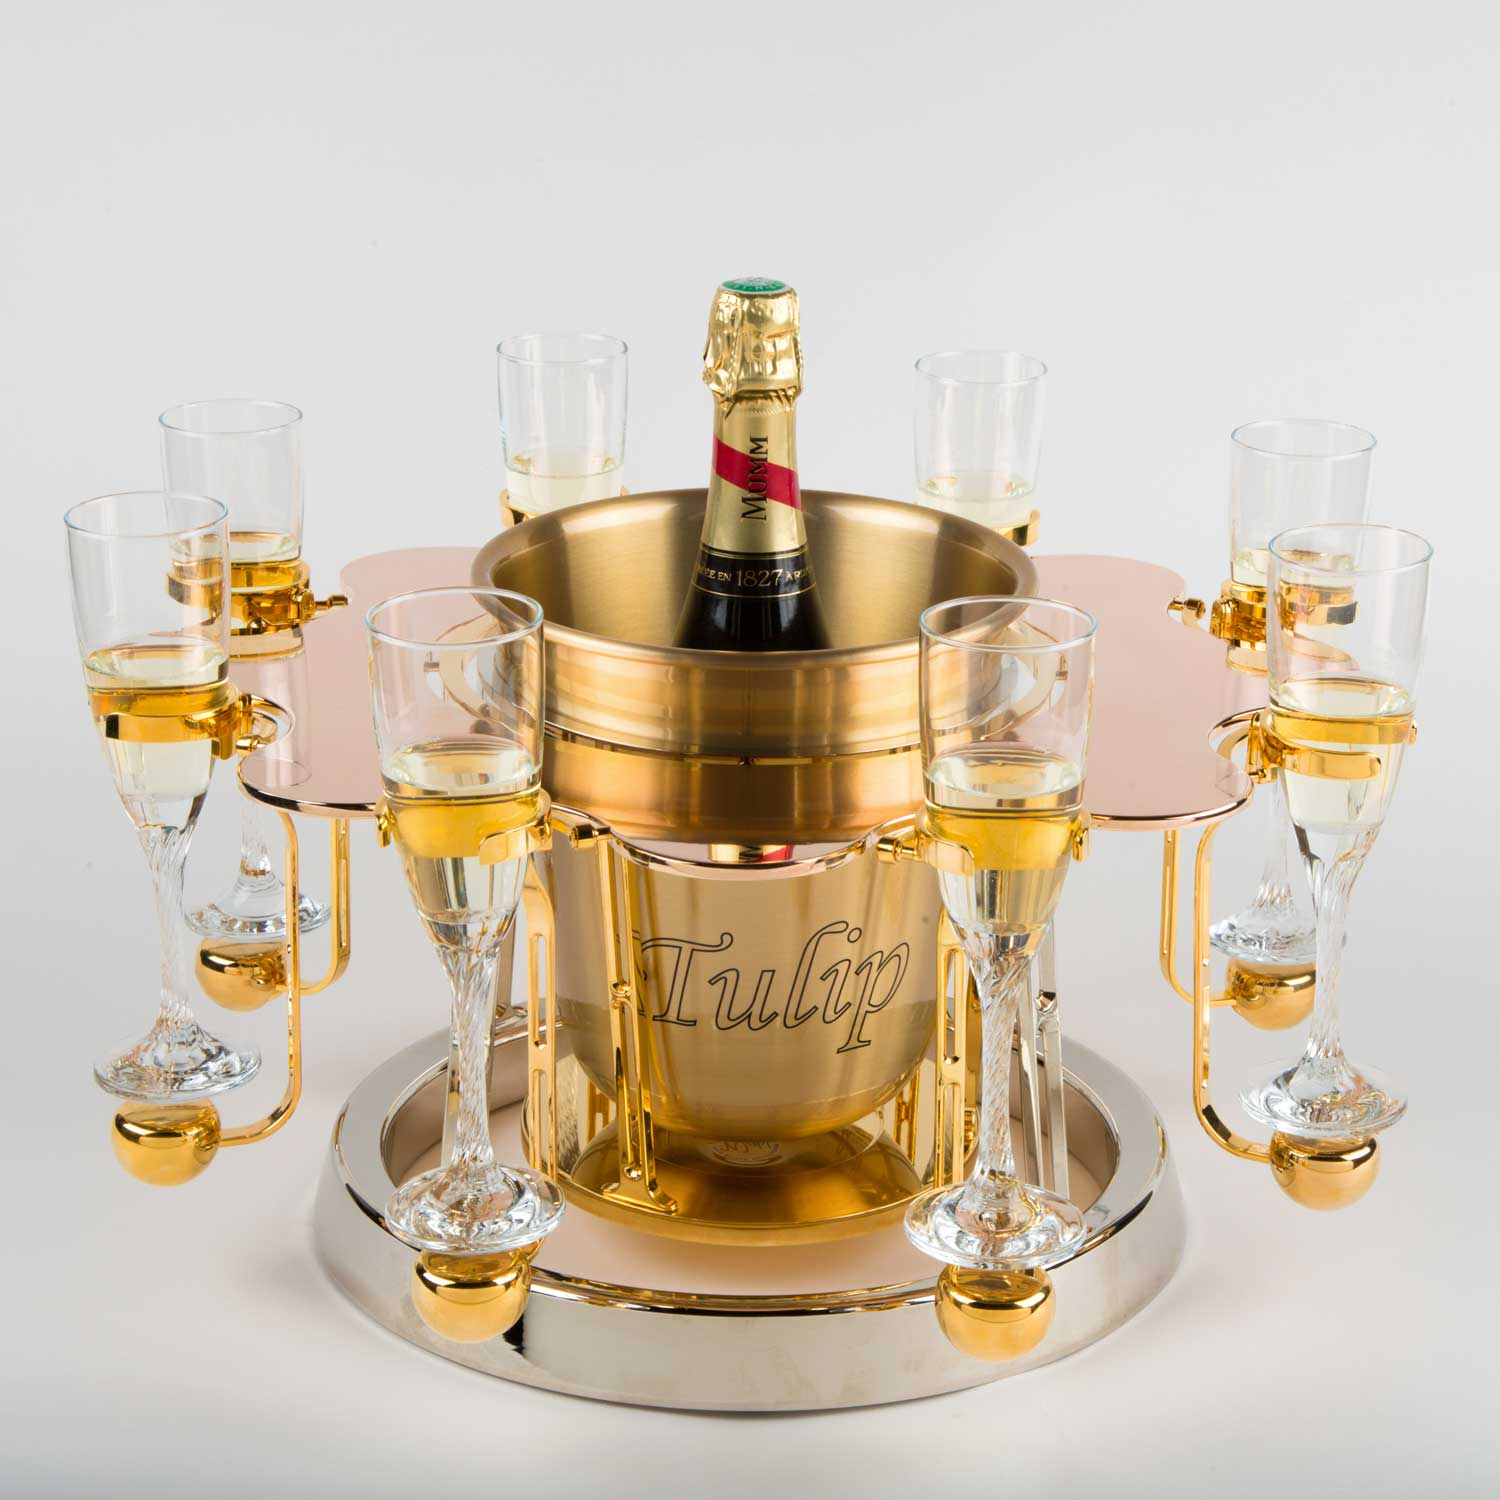 Tulip By Germain luxury champagne bucket Pinky edition Mumm